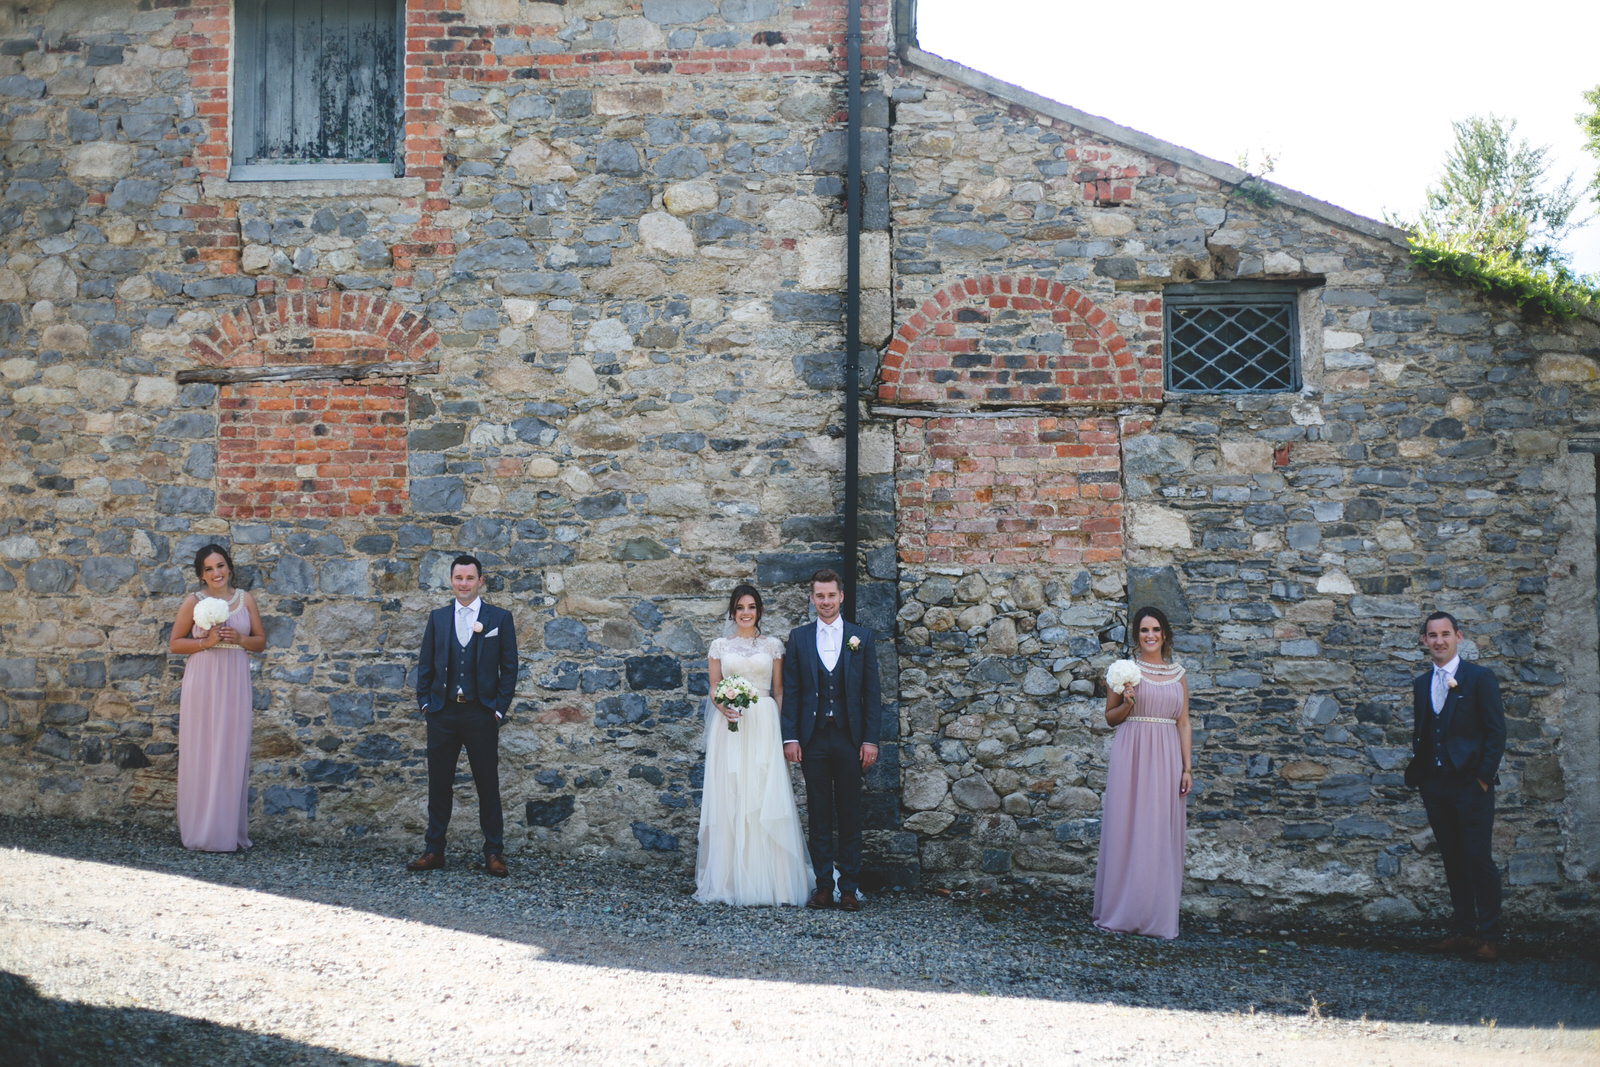 Bridal party at Ballymascanlon Hotel wedding venue